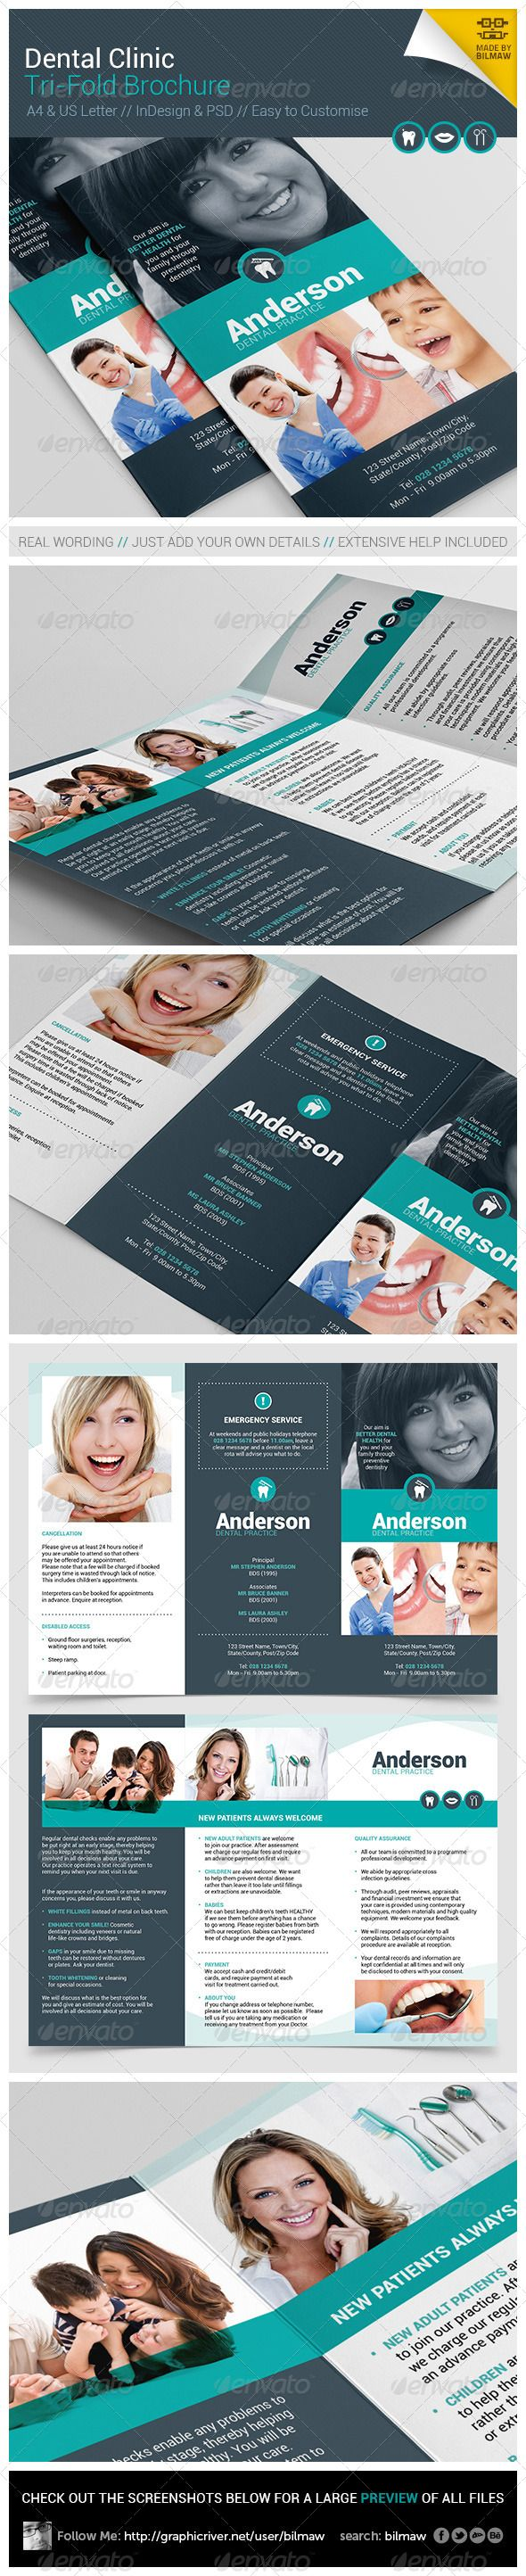 Dental Clinic Tri-Fold Brochure. A modern 6 Panel Tri-Fold/3-Fold leaflet, complete with real wording which you can use or edit to suit your needs.